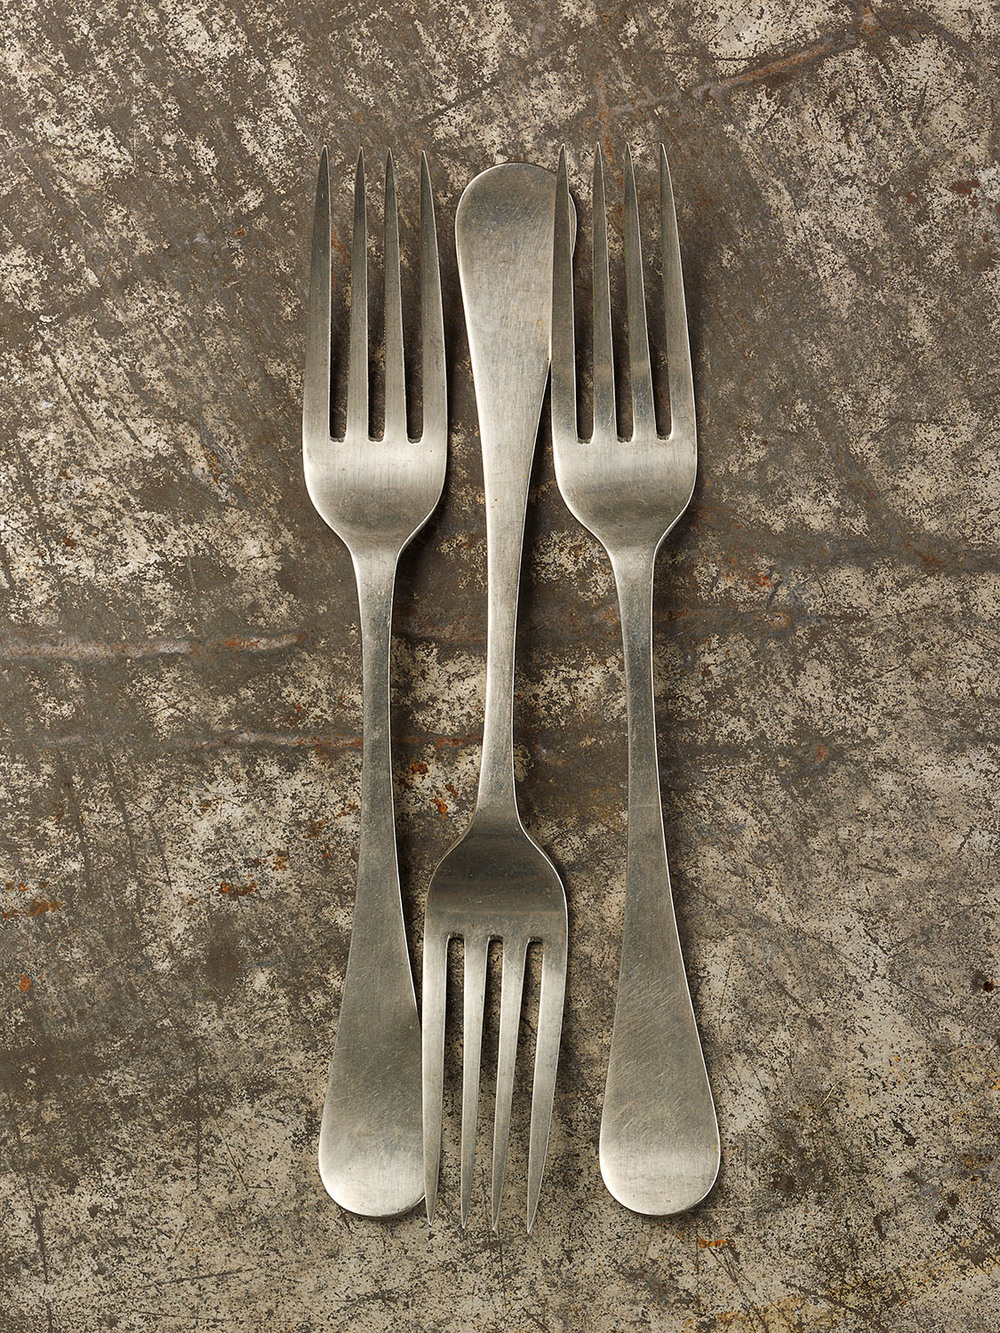 #68 Three Modern Forks